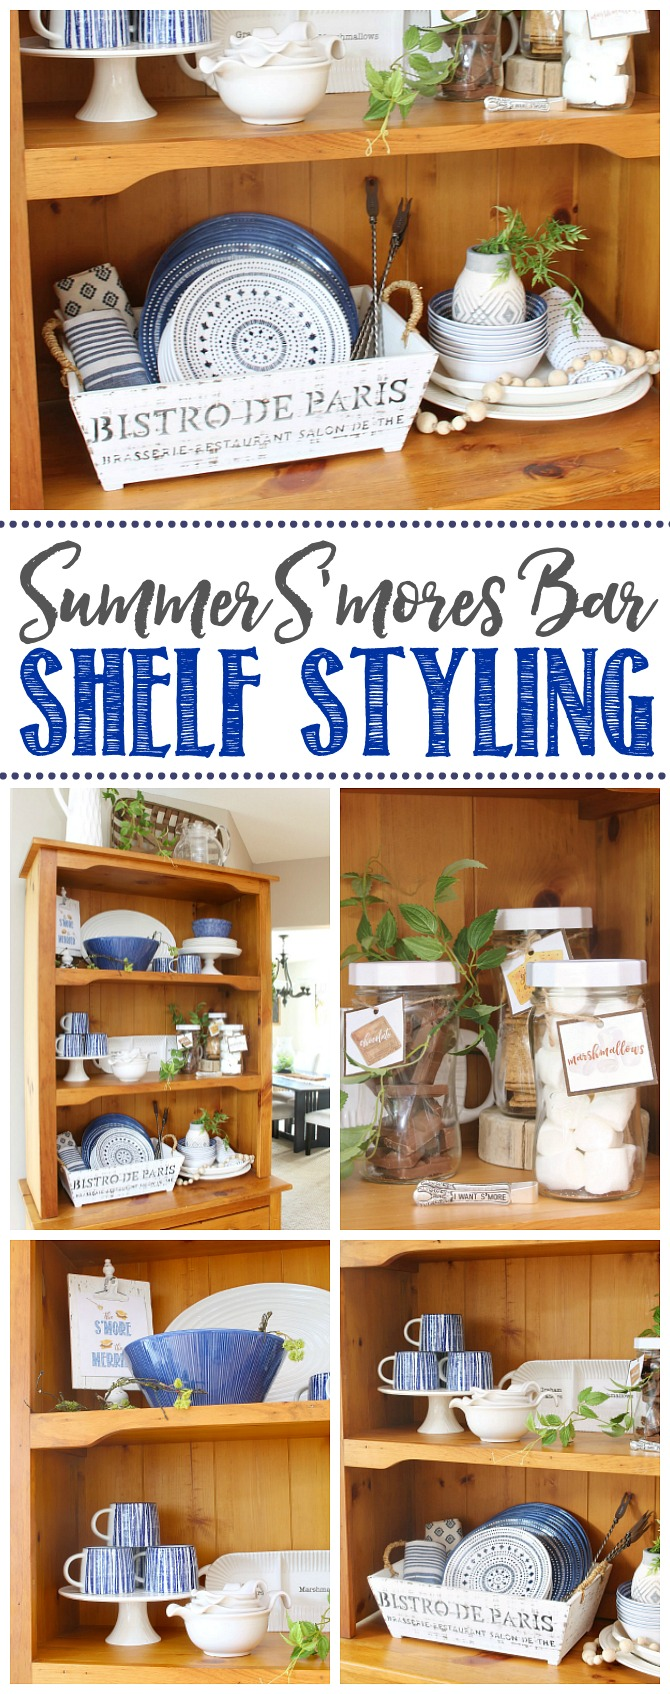 Wood hutch decorated for summer with blue and white.